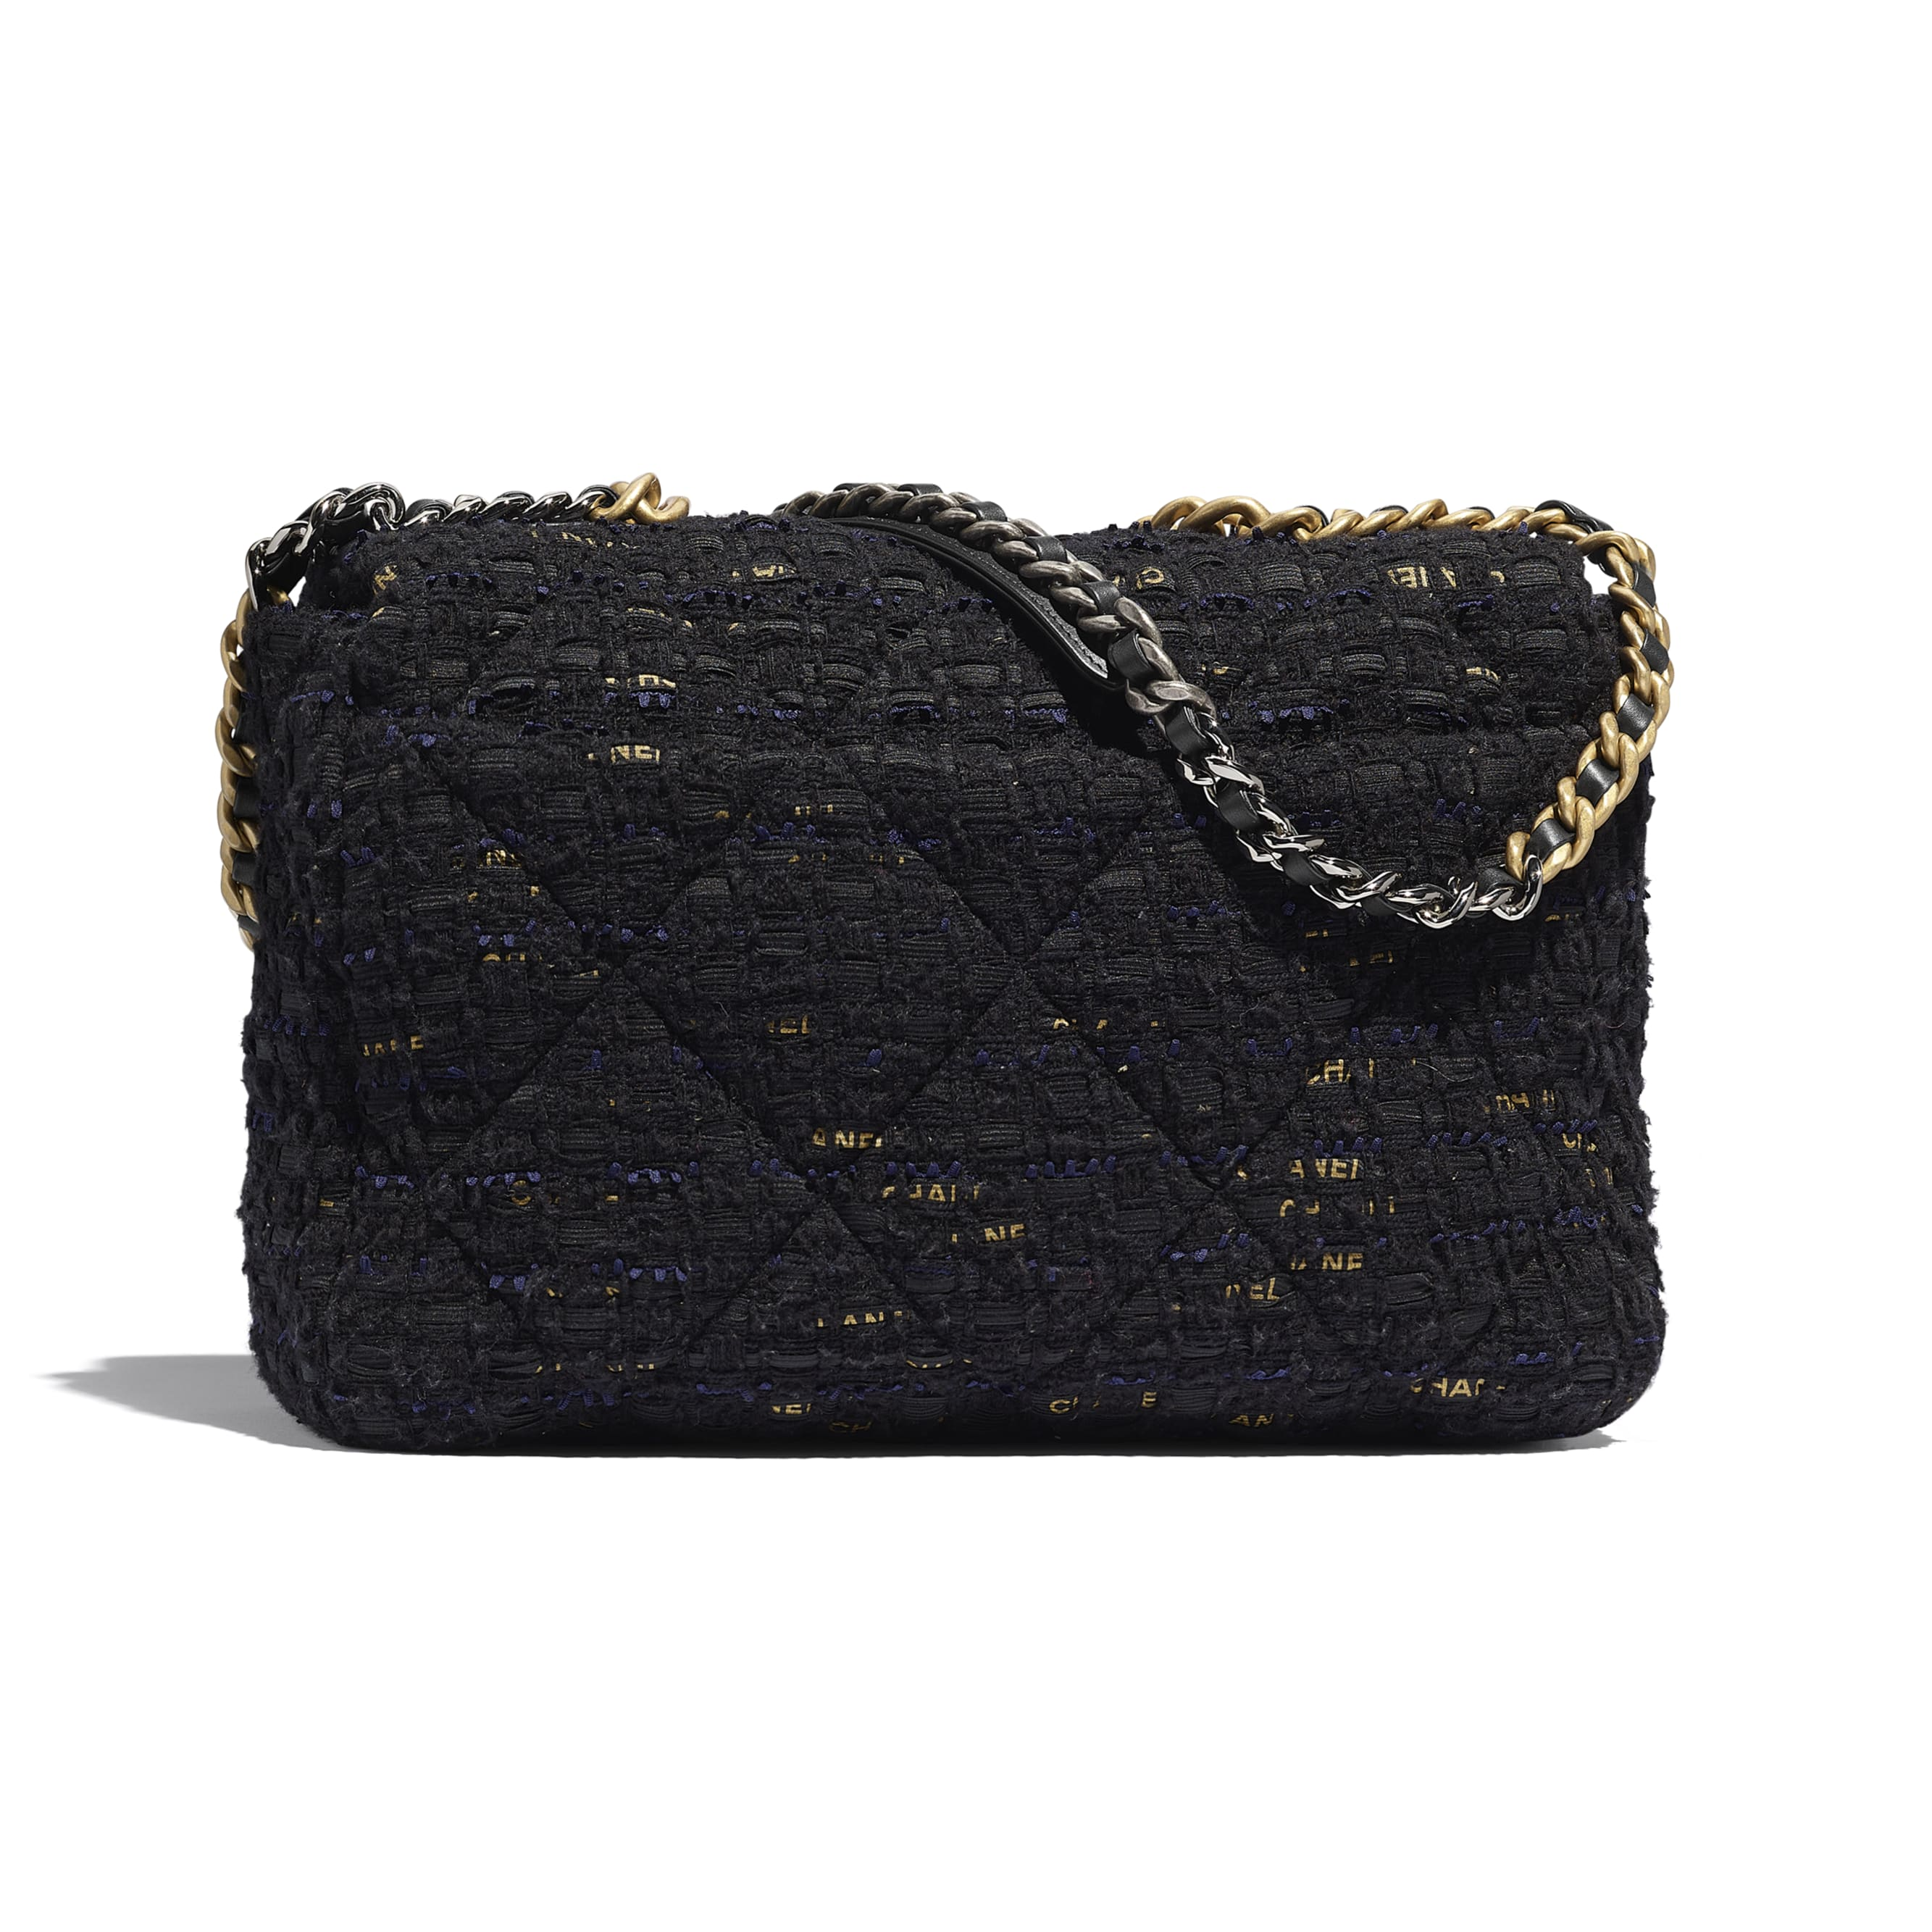 CHANEL 19 Maxi Flap Bag - Black, Navy Blue & Gold - Tweed, Gold-Tone, Silver-Tone & Ruthenium-Finish Metal - CHANEL - Alternative view - see standard sized version